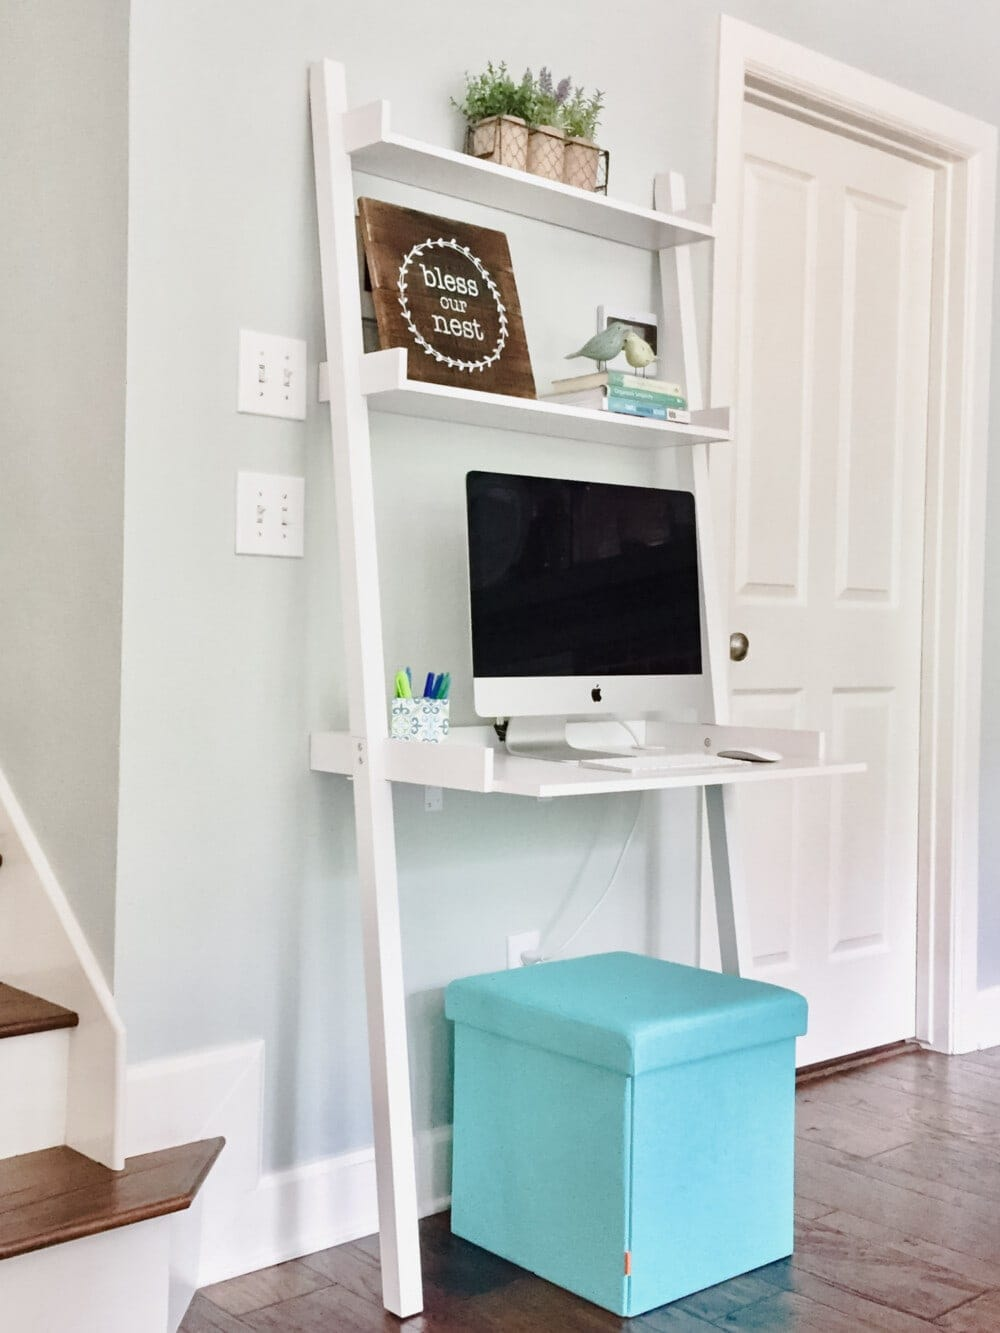 a small ladder desk leaning against the wall with a small popup stool underneath and a desktop computer and decor sitting on the upper shelves